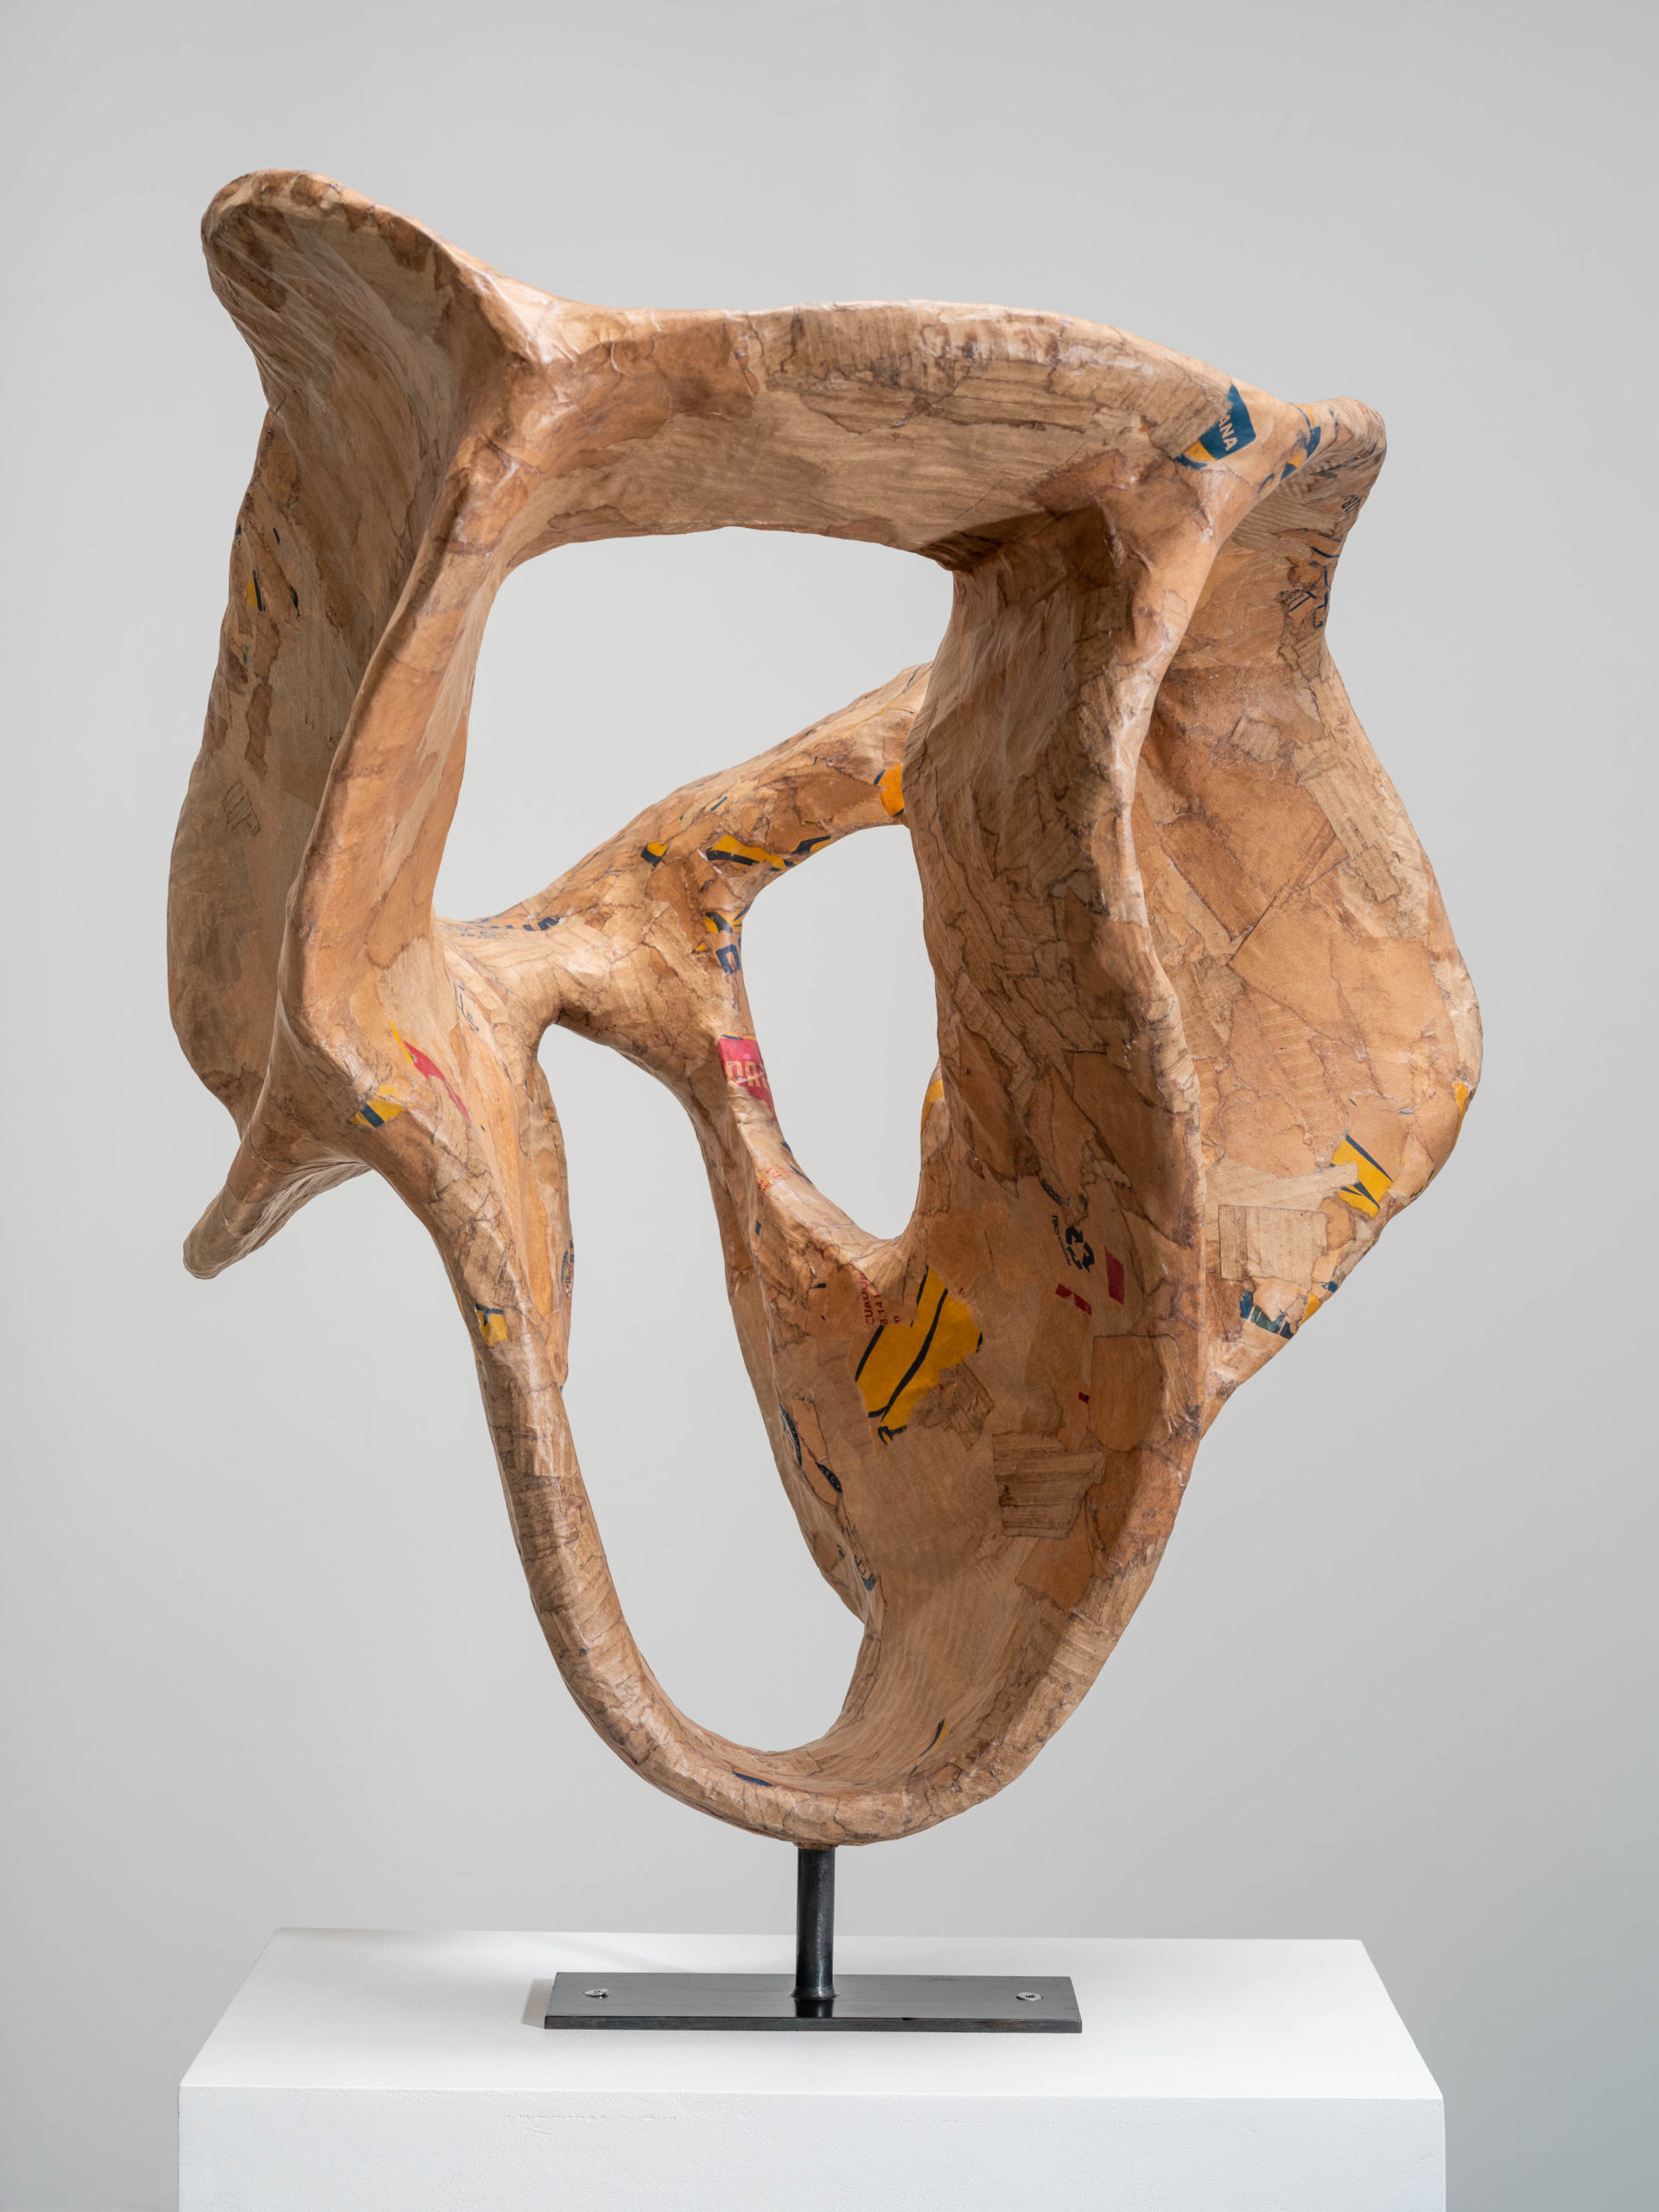 Carl Boutard, Hearing, 2020, laser cut cardboard, paper, lacquer, steel, 80 x 60 x 60 cm, edition of 3